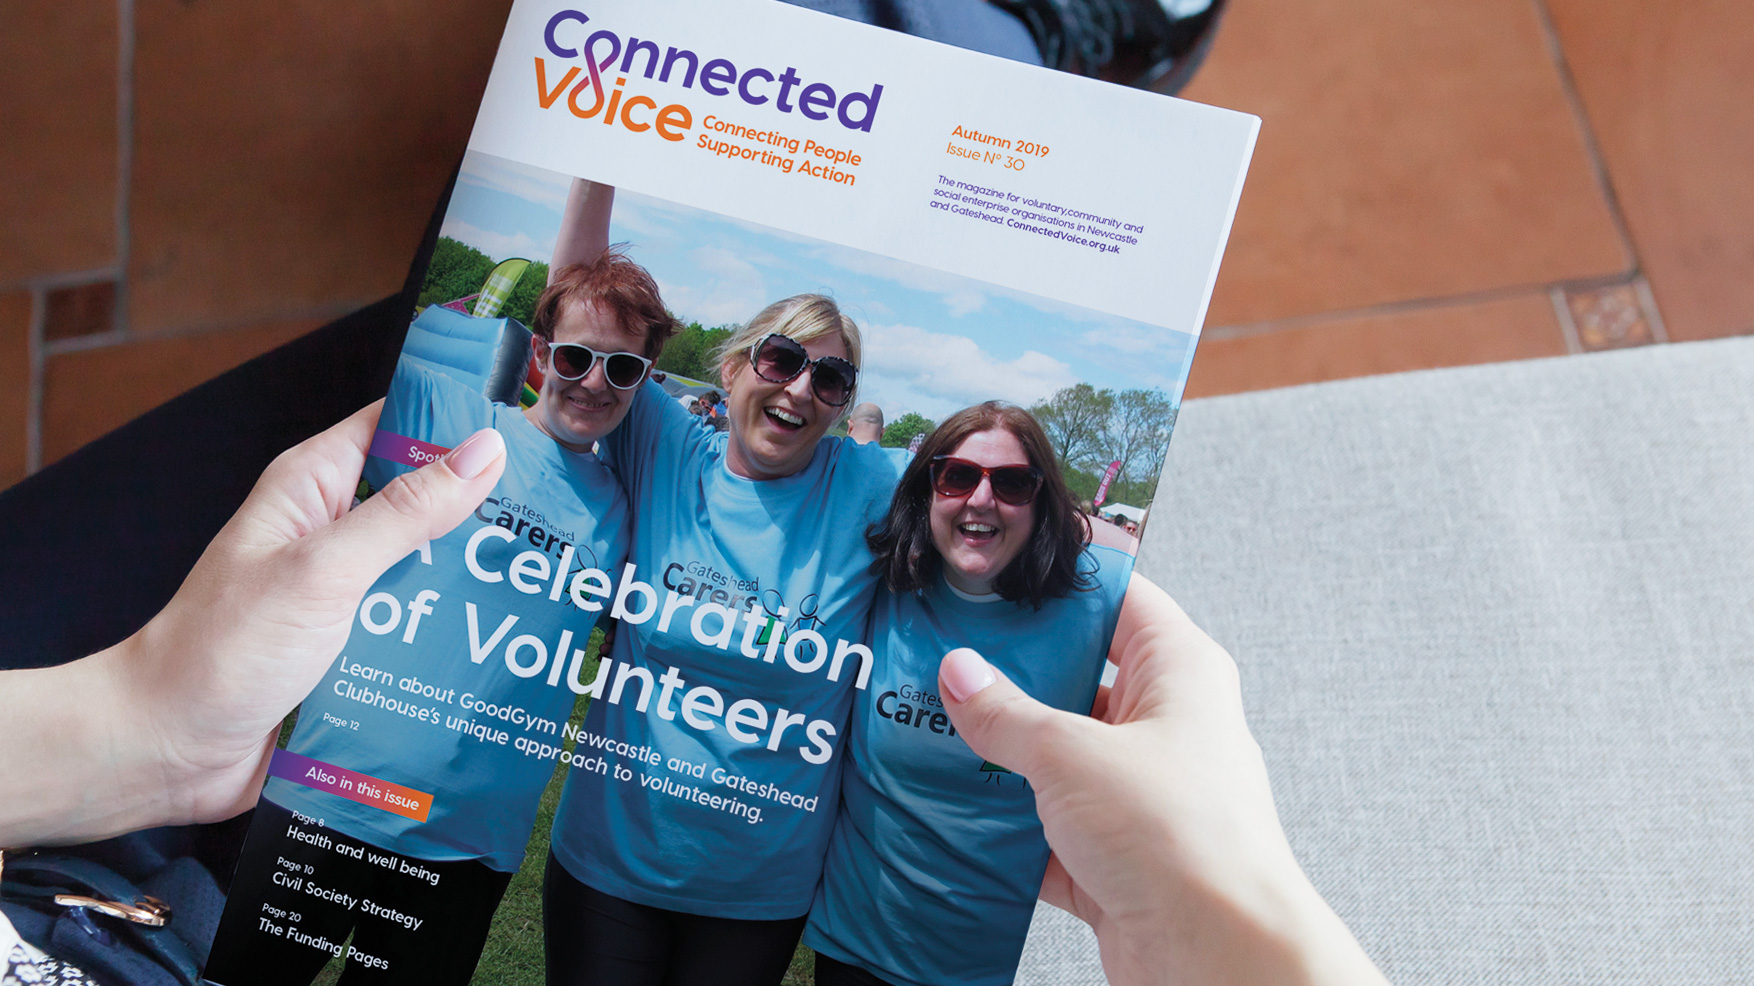 Connected Voice Newcastle charity brand, charity magazine and logo for regional cvs by Altogether creative.